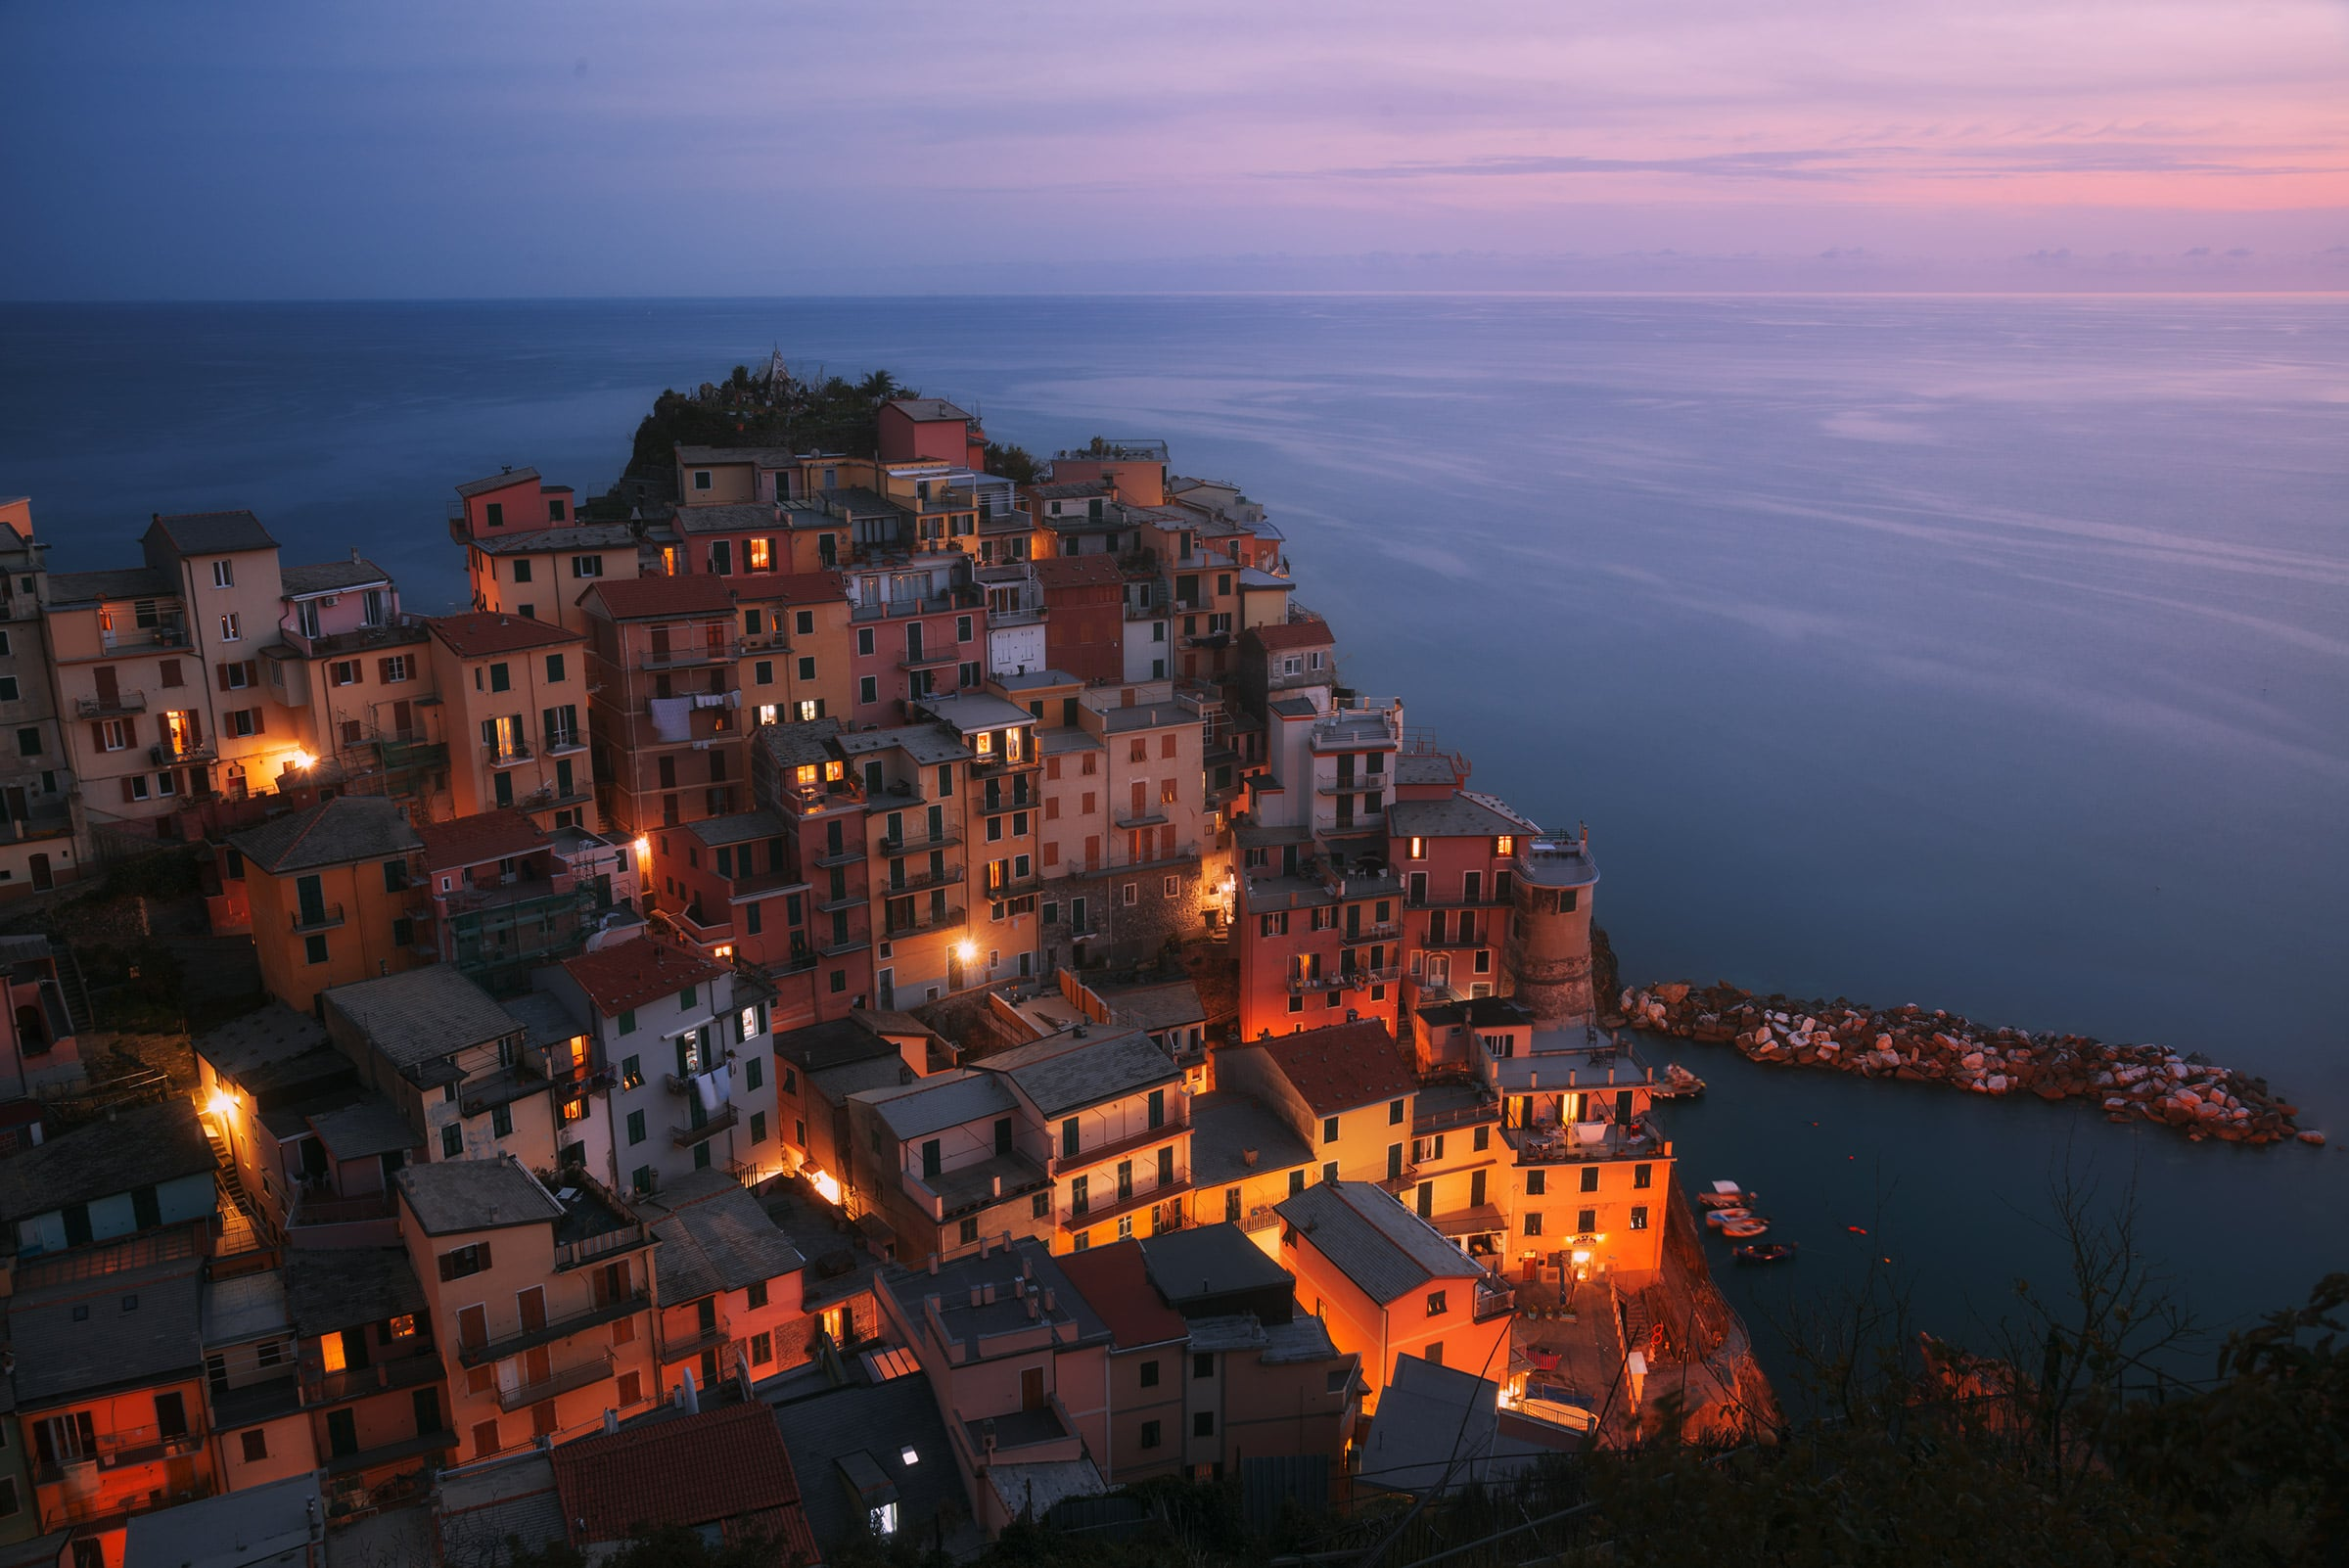 Big waves of a storm clearing at sunset in Cinque Terre photo tour